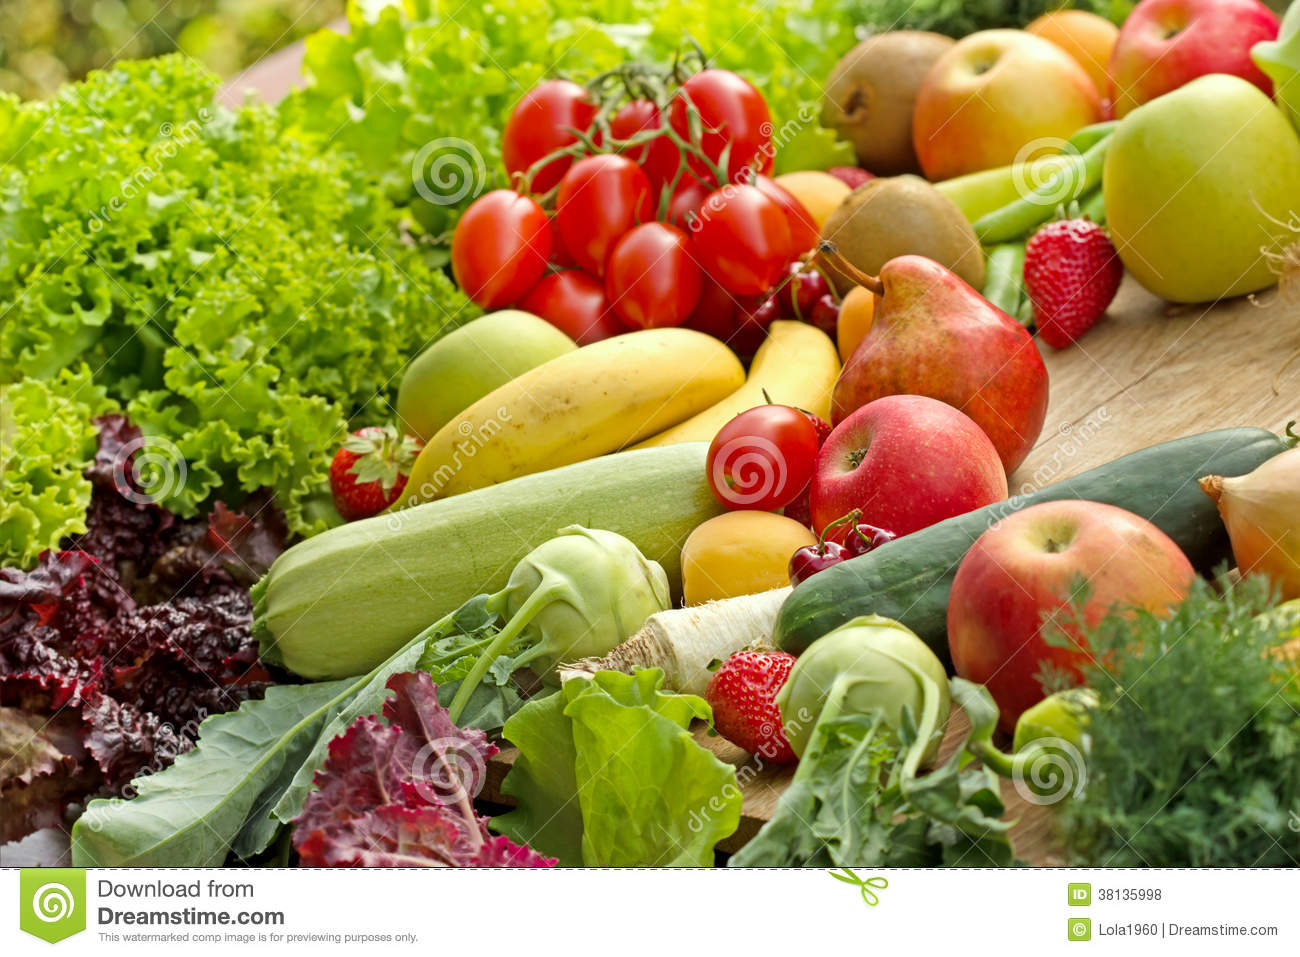 Pile of various fruits and vegetables